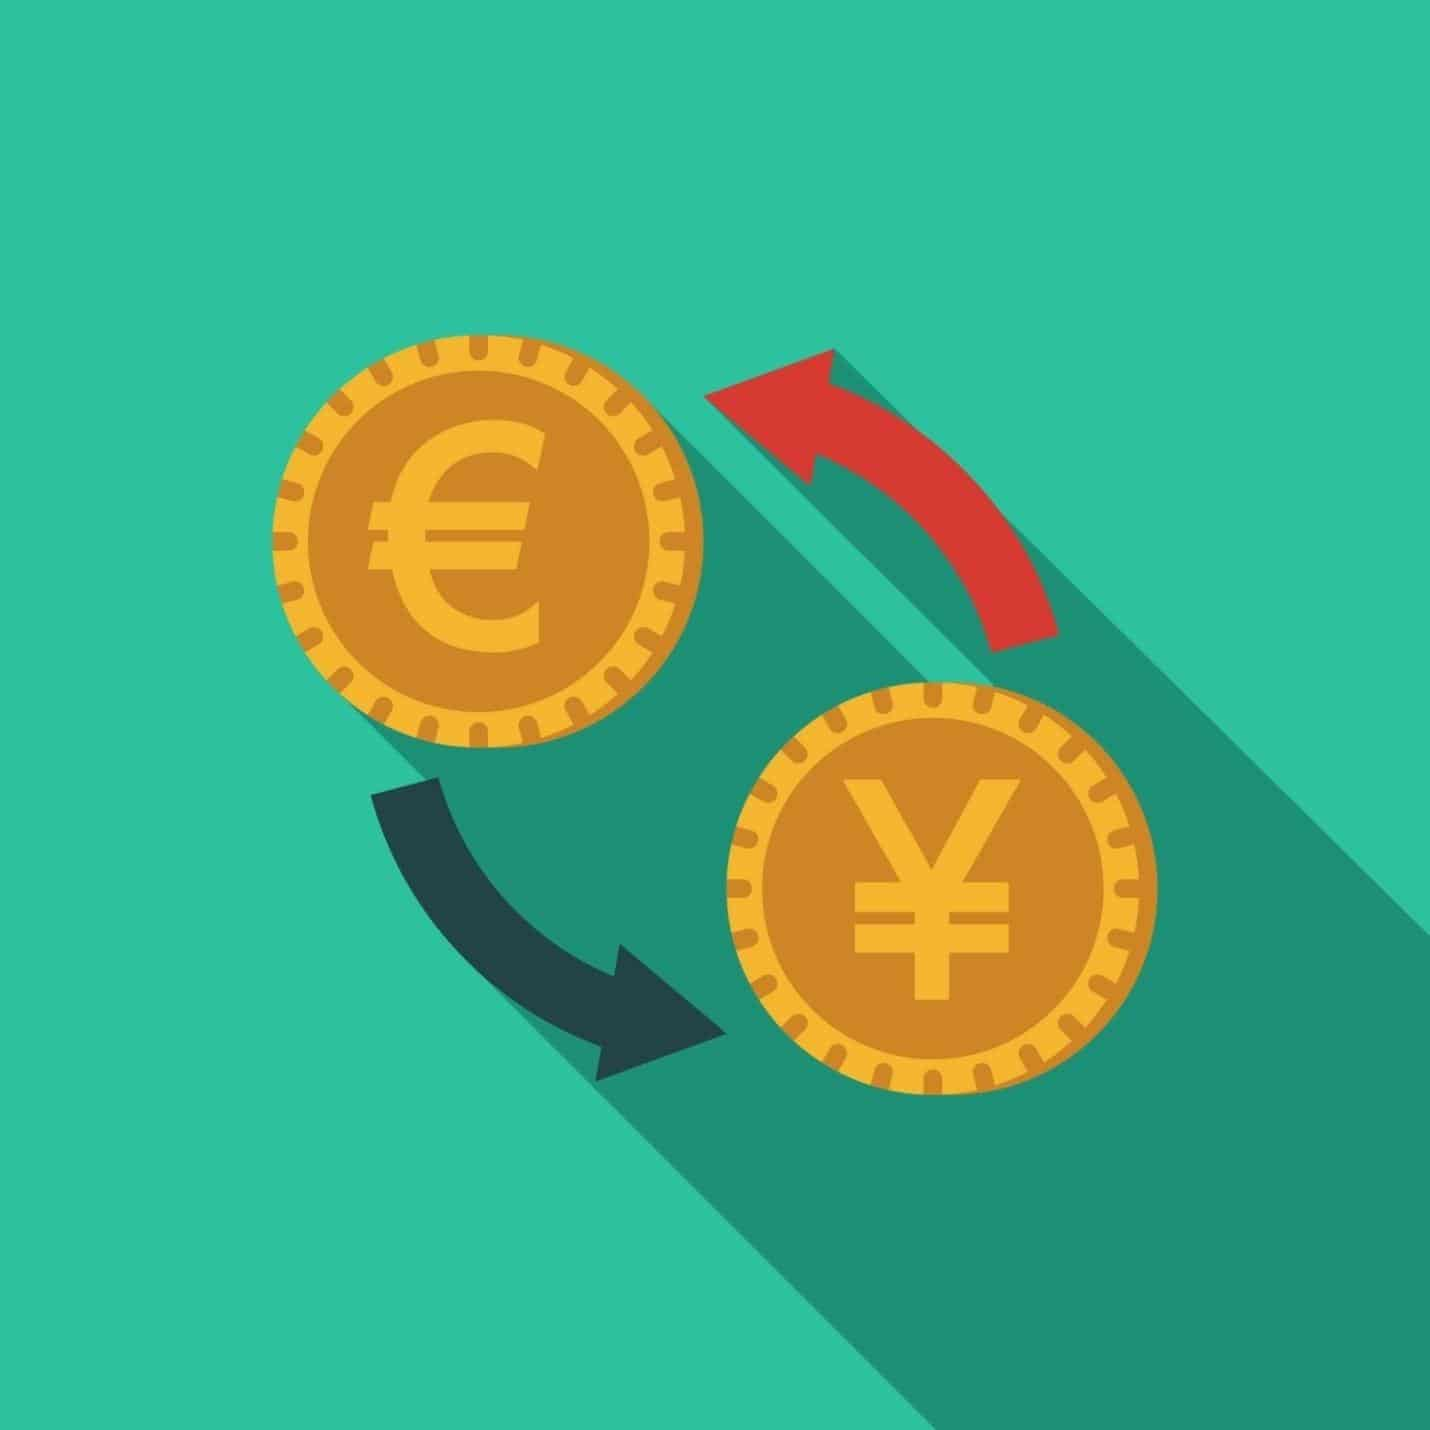 Currency swap types